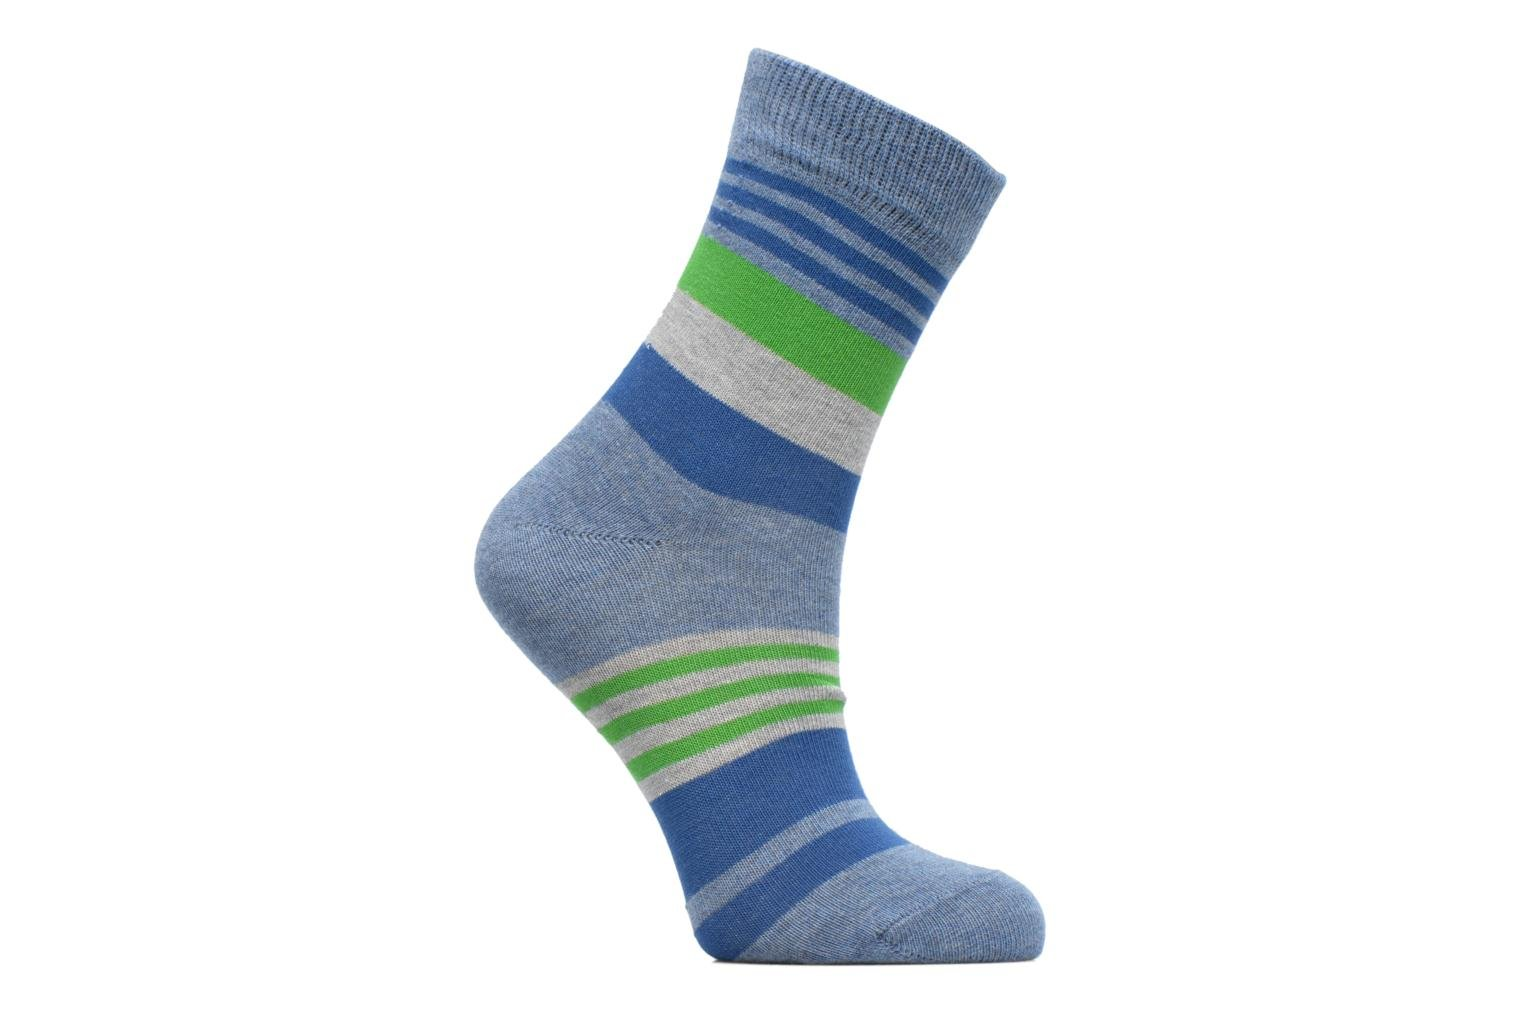 Chaussettes Irregular Stripe 6660 Light denim